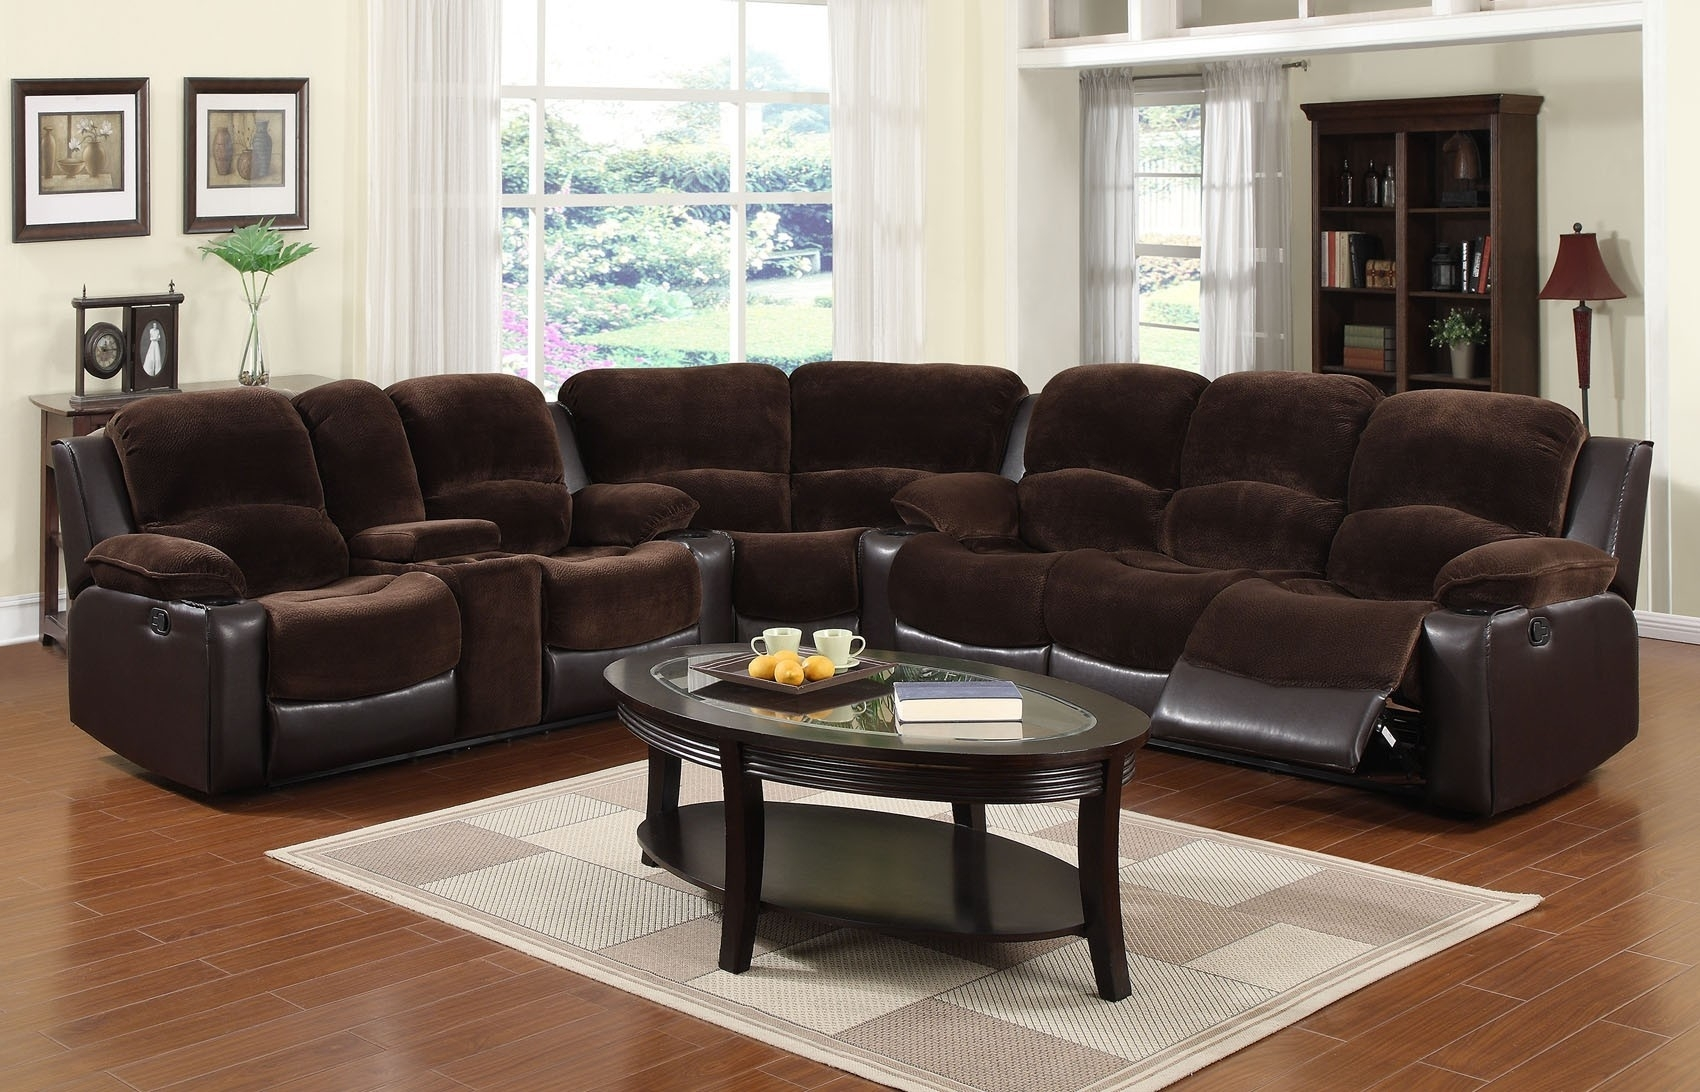 3 Pc Microfiber Sectional Sofa With Recliner And Queen Sleeper Within Declan 3 Piece Power Reclining Sectionals With Left Facing Console Loveseat (Photo 29 of 30)